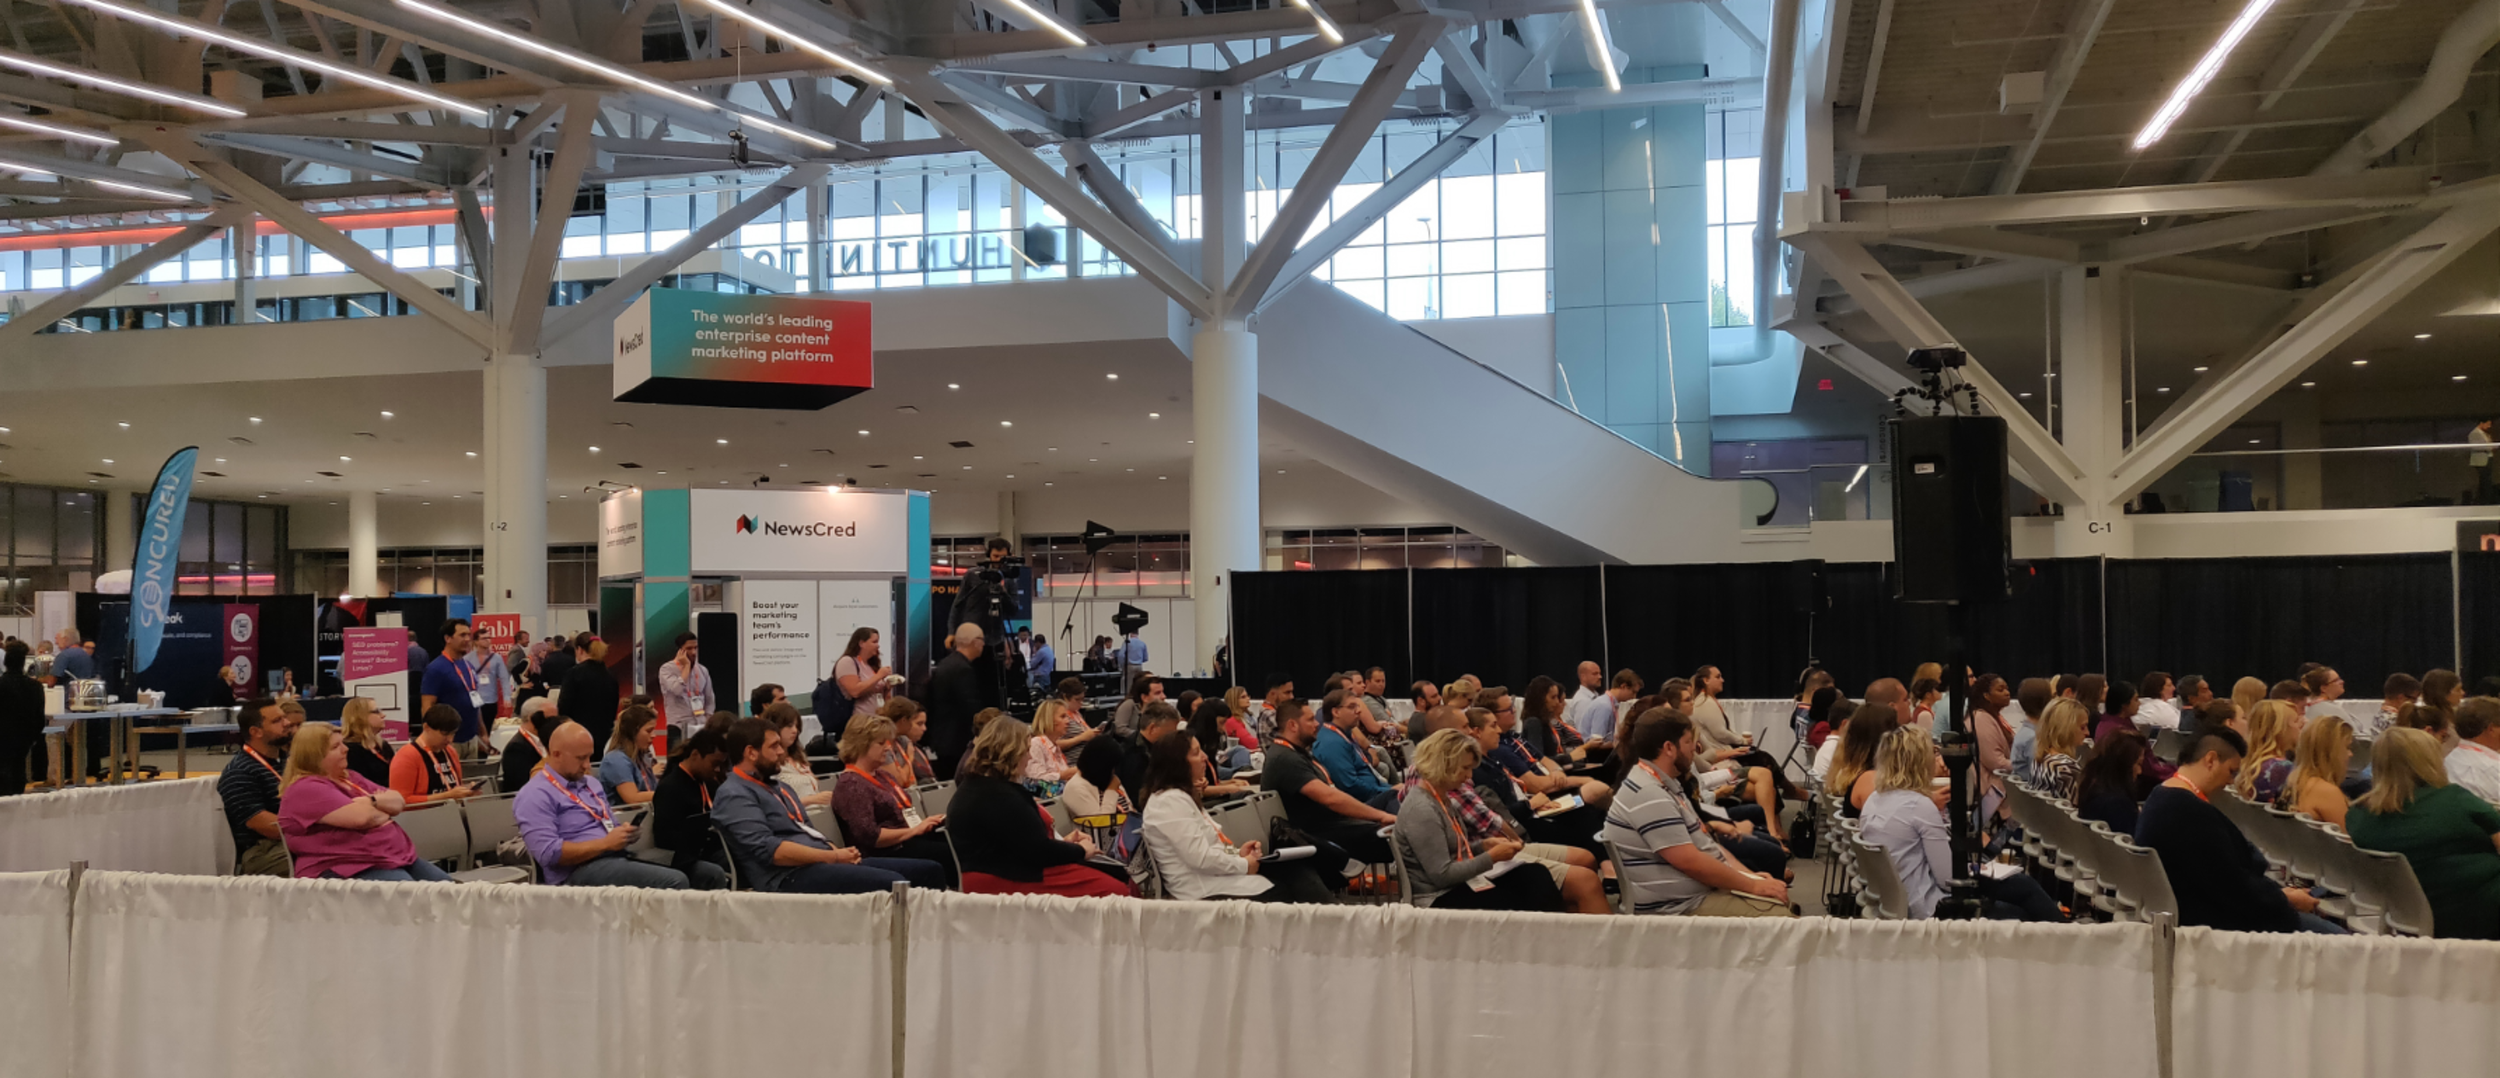 Five Takeaways from Content Marketing World 2018